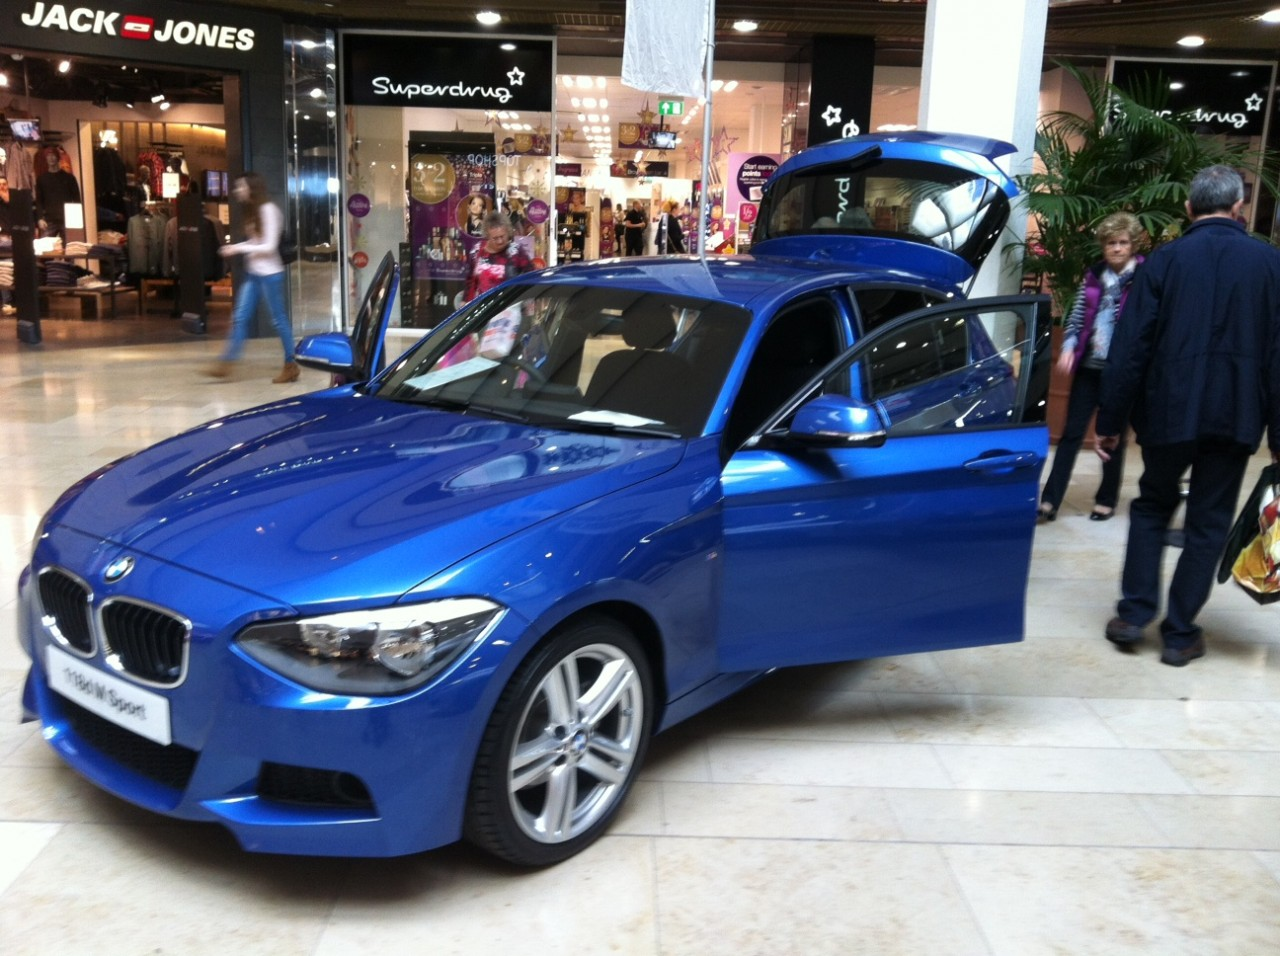 BMW Showcased two models the 2 series active tourer and the 1 series 118d